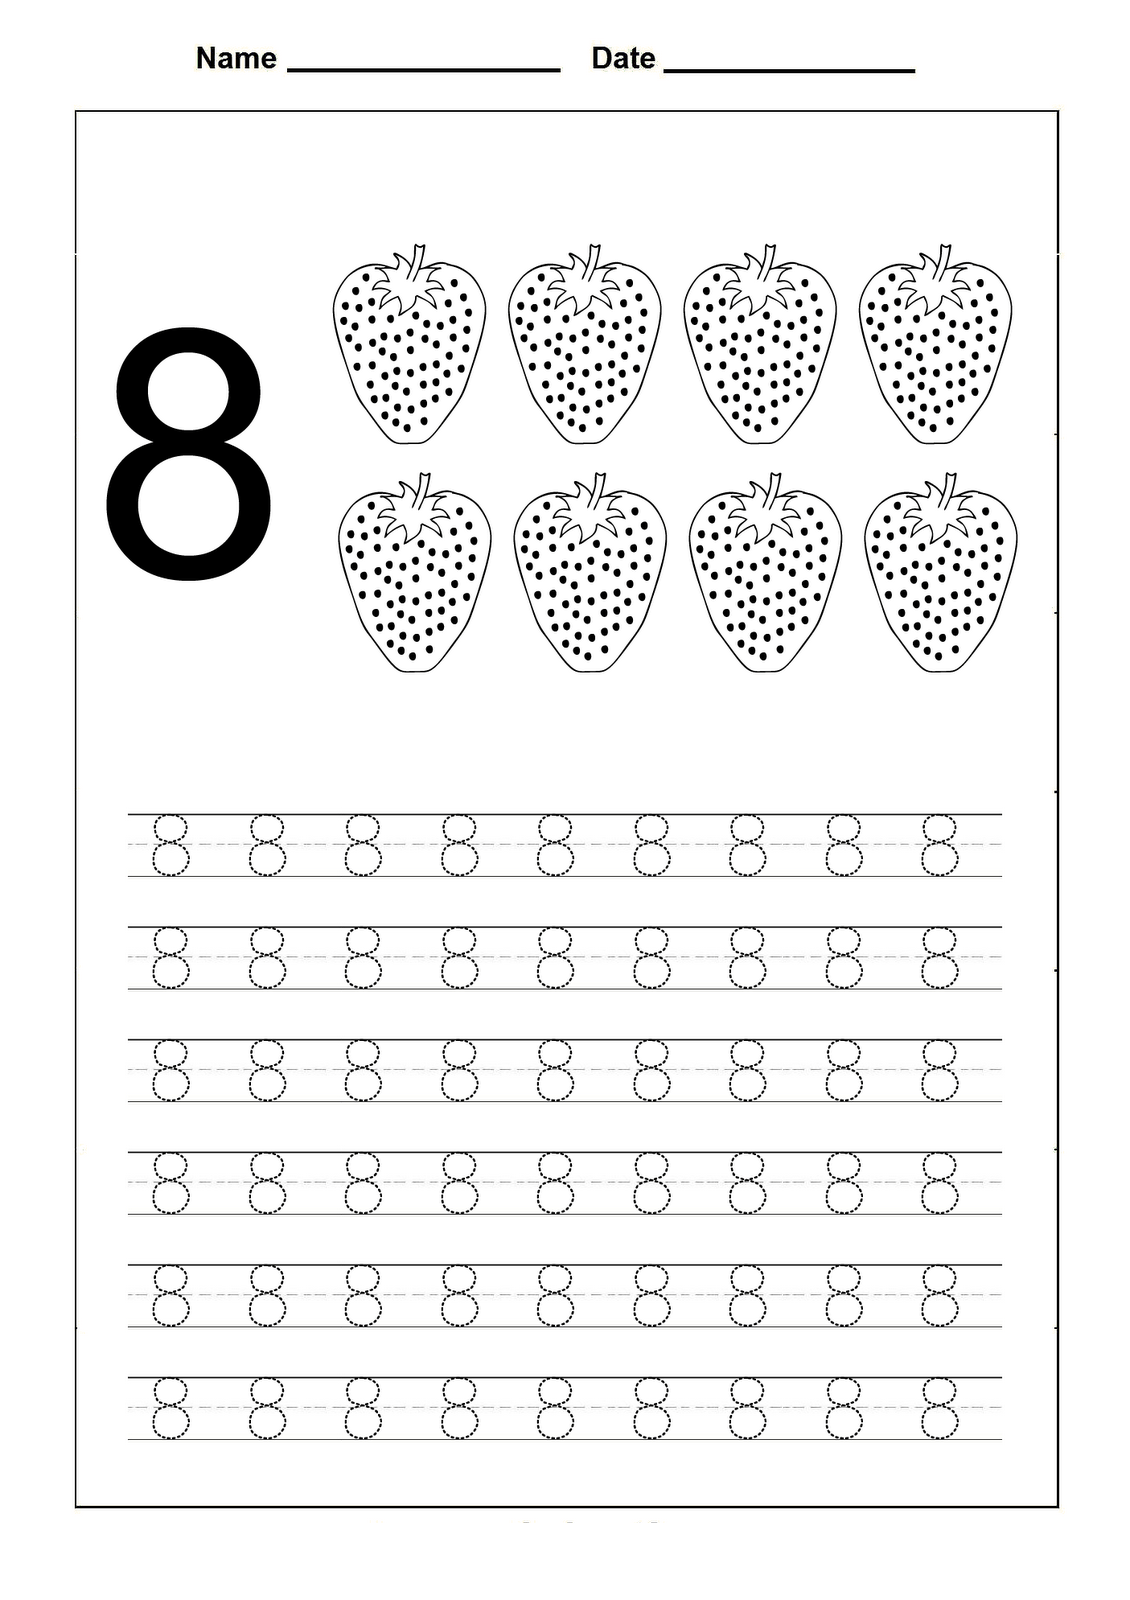 Number 8 Worksheets For Children